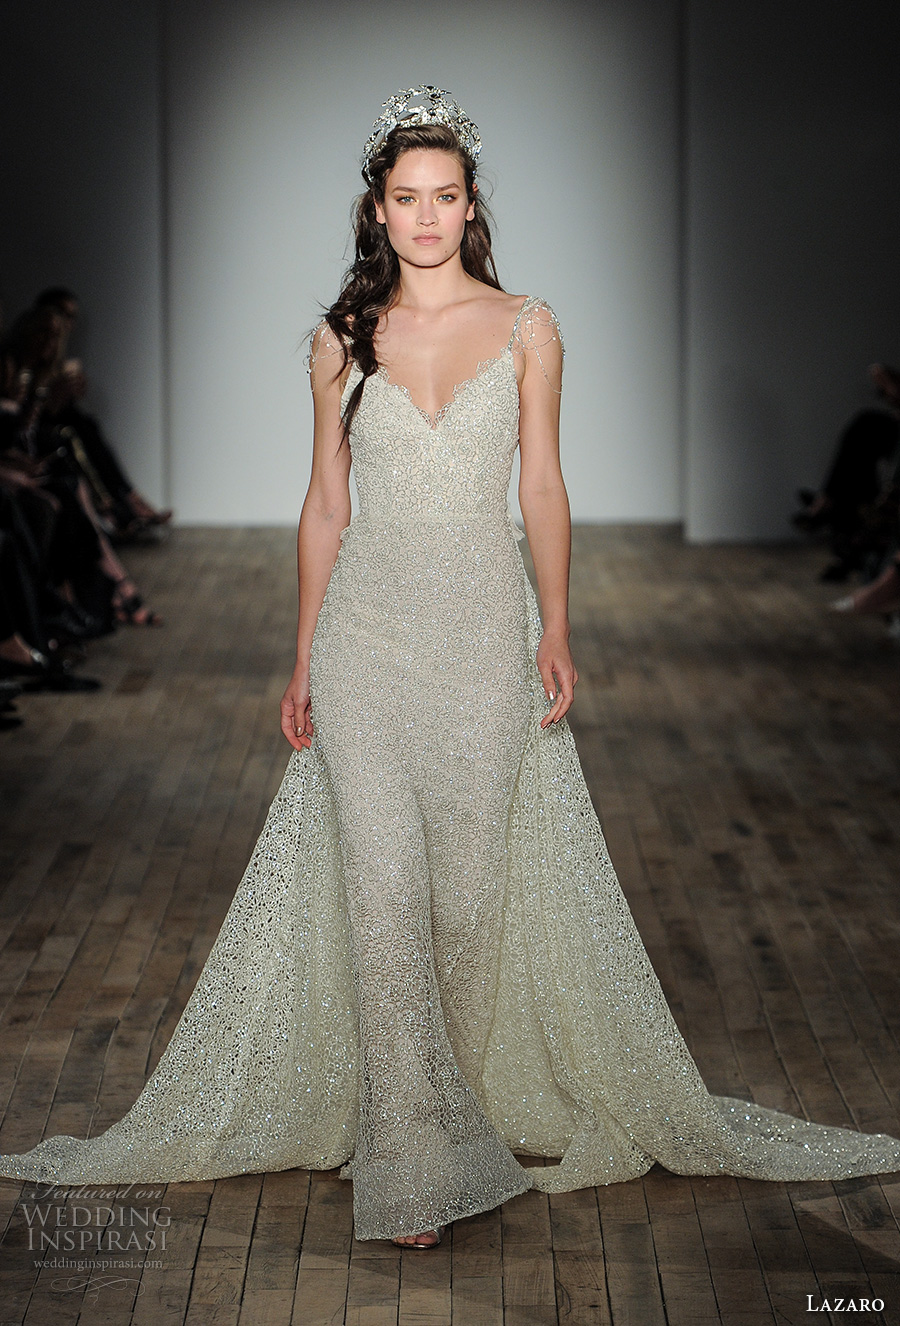 Bridal Inspiration From The Haute Couture Runways | Marie